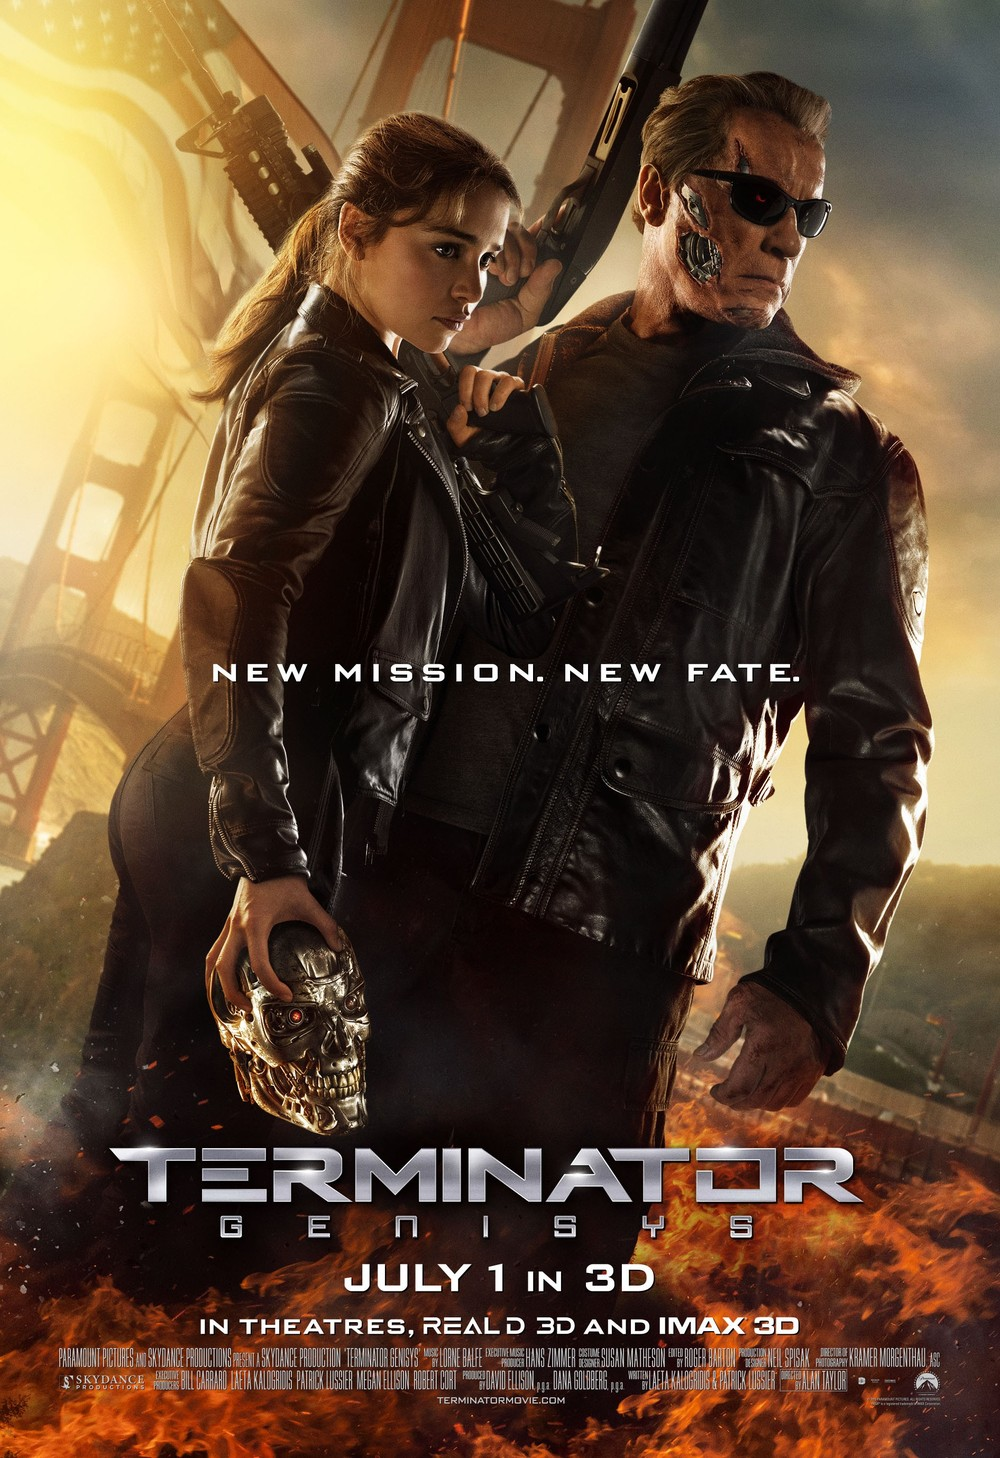 Terminator Genisys Blu-ray 3D, DVD and Digital Release Dates and ...